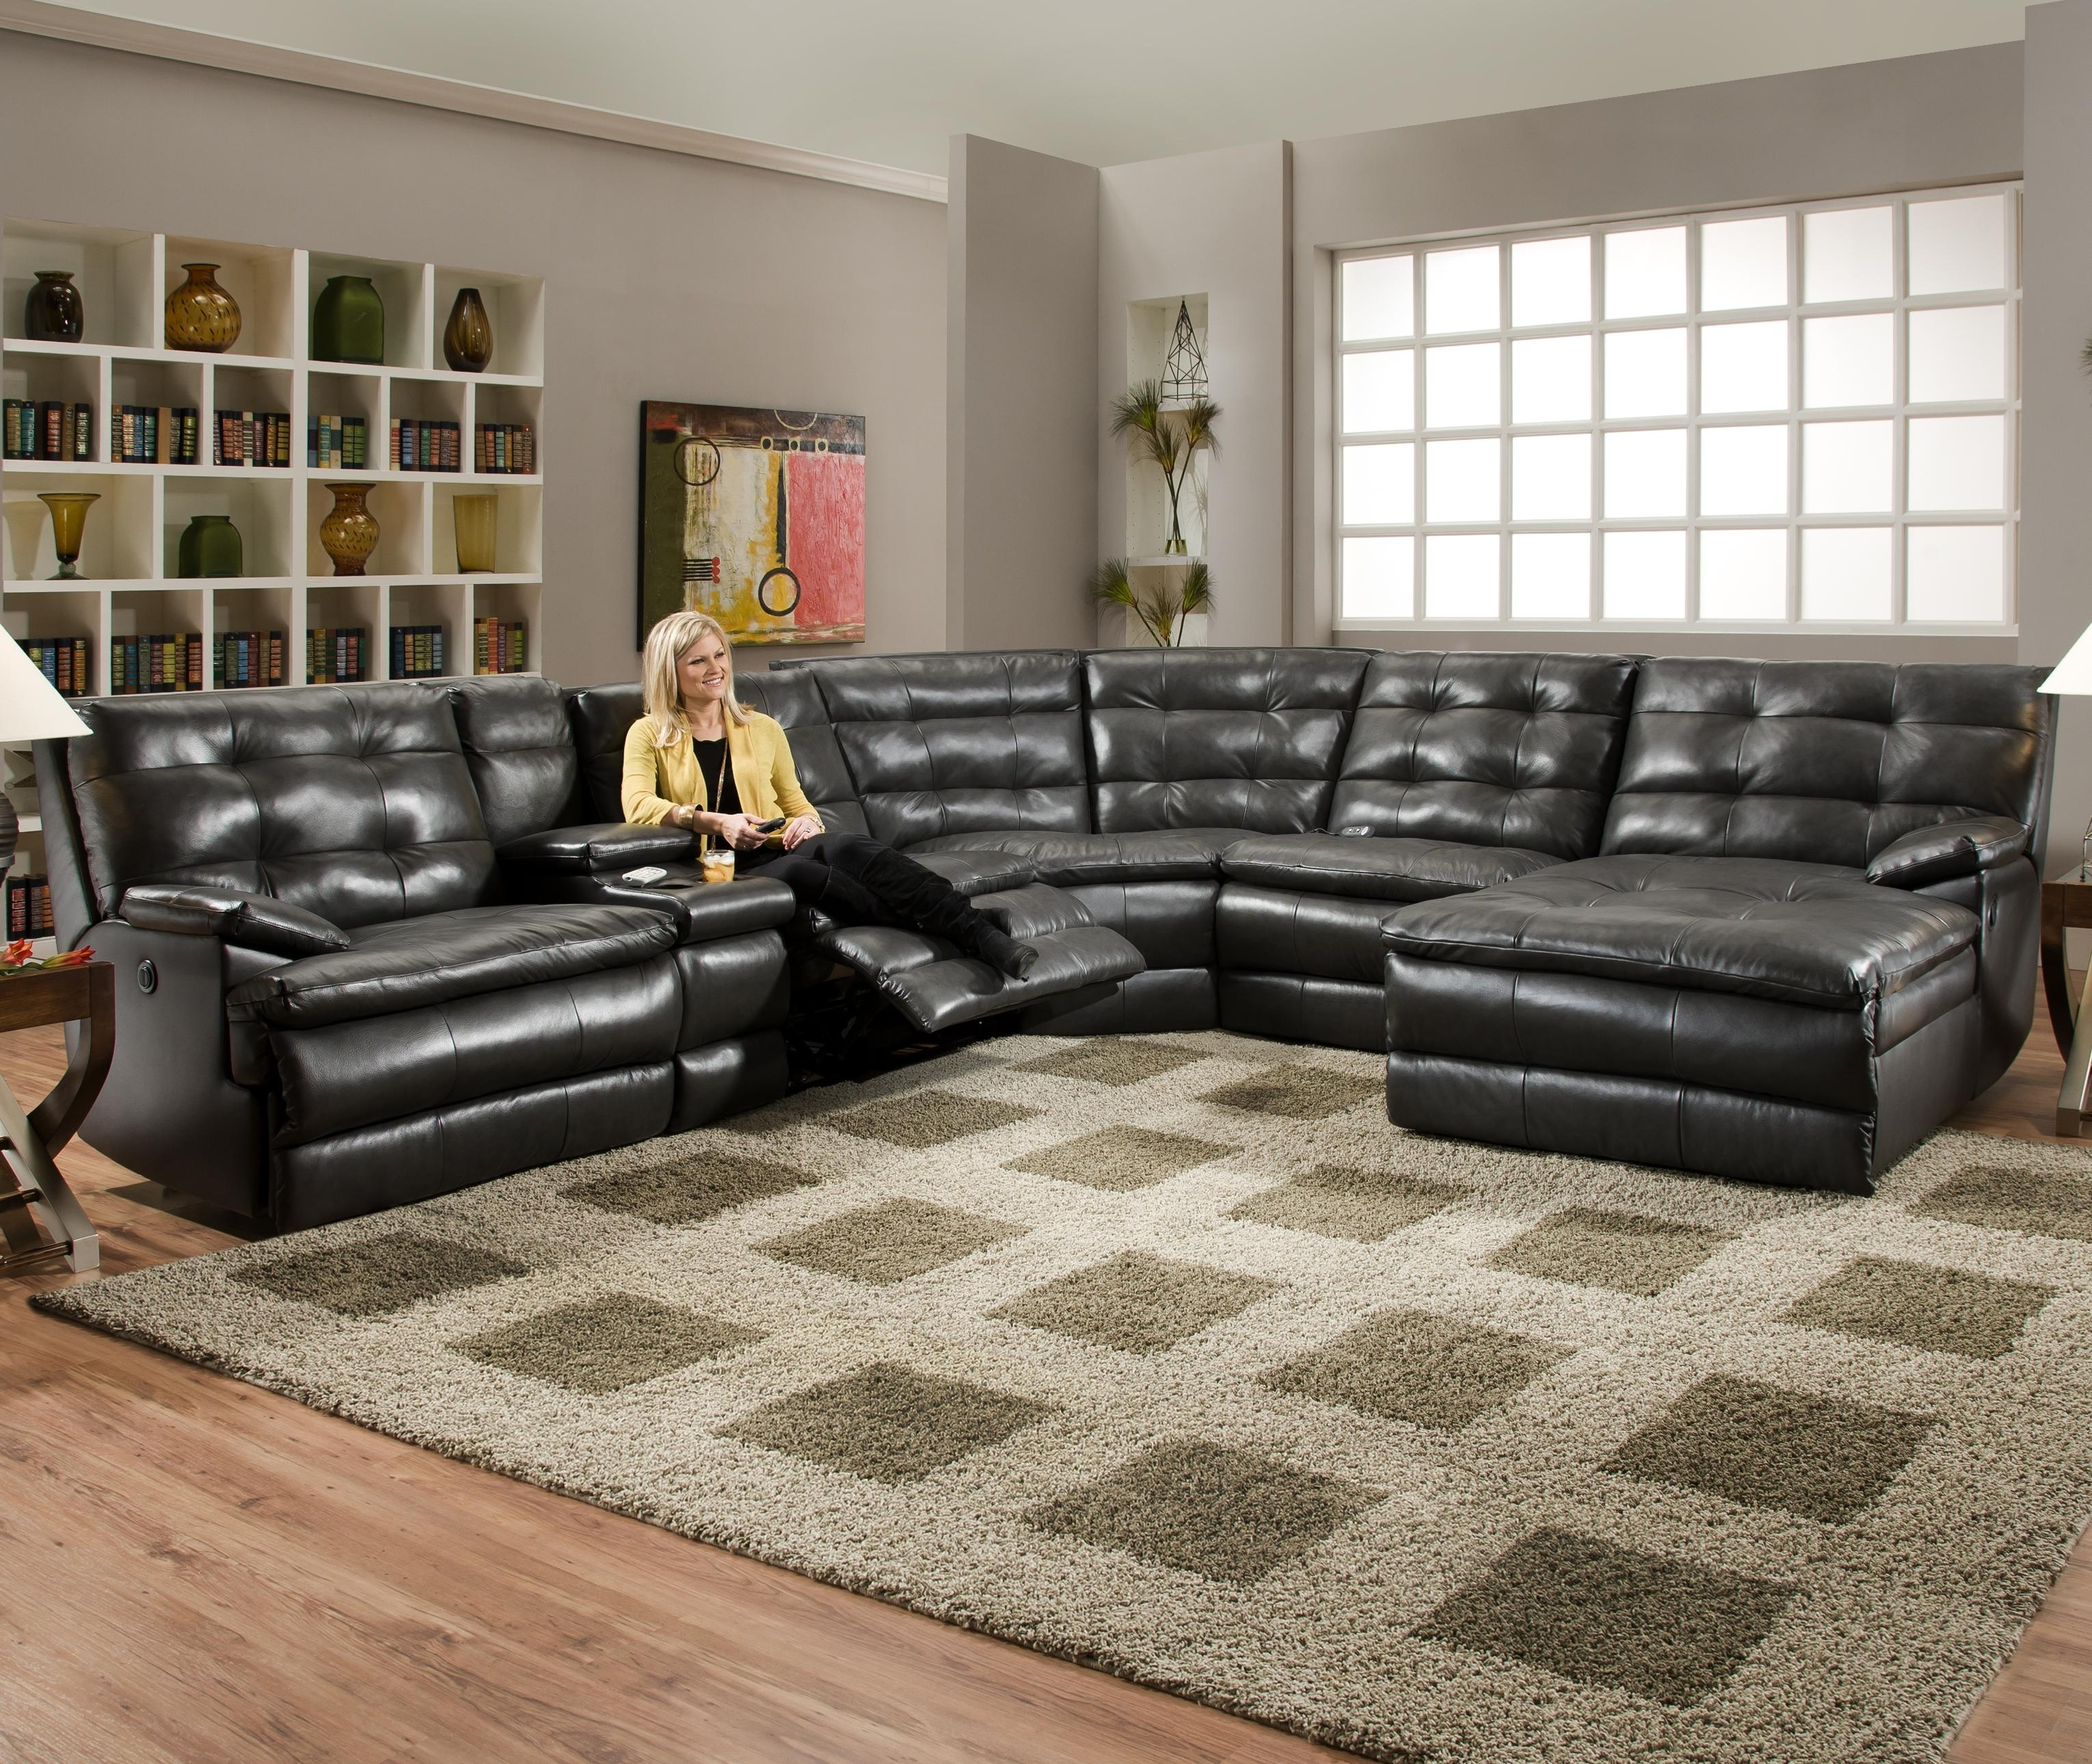 Luxurious Tufted Leather Sectional Sofa In Classy Black Color With With Regard To Leather Motion Sectional Sofas (Image 7 of 10)